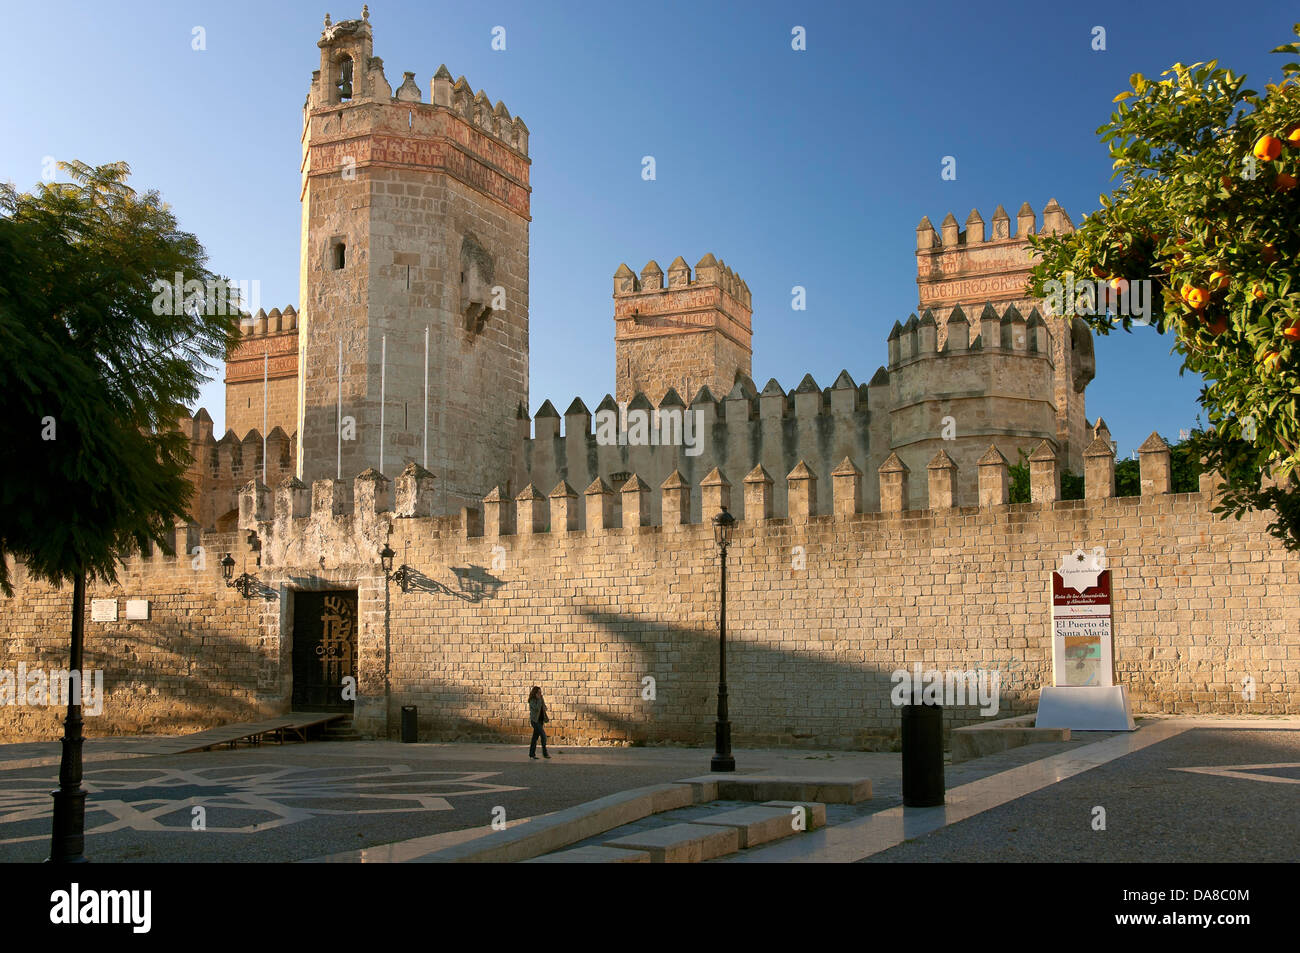 San marcos castle 14th century el puerto de santa maria stock photo 57962708 alamy - Idental puerto santa maria ...